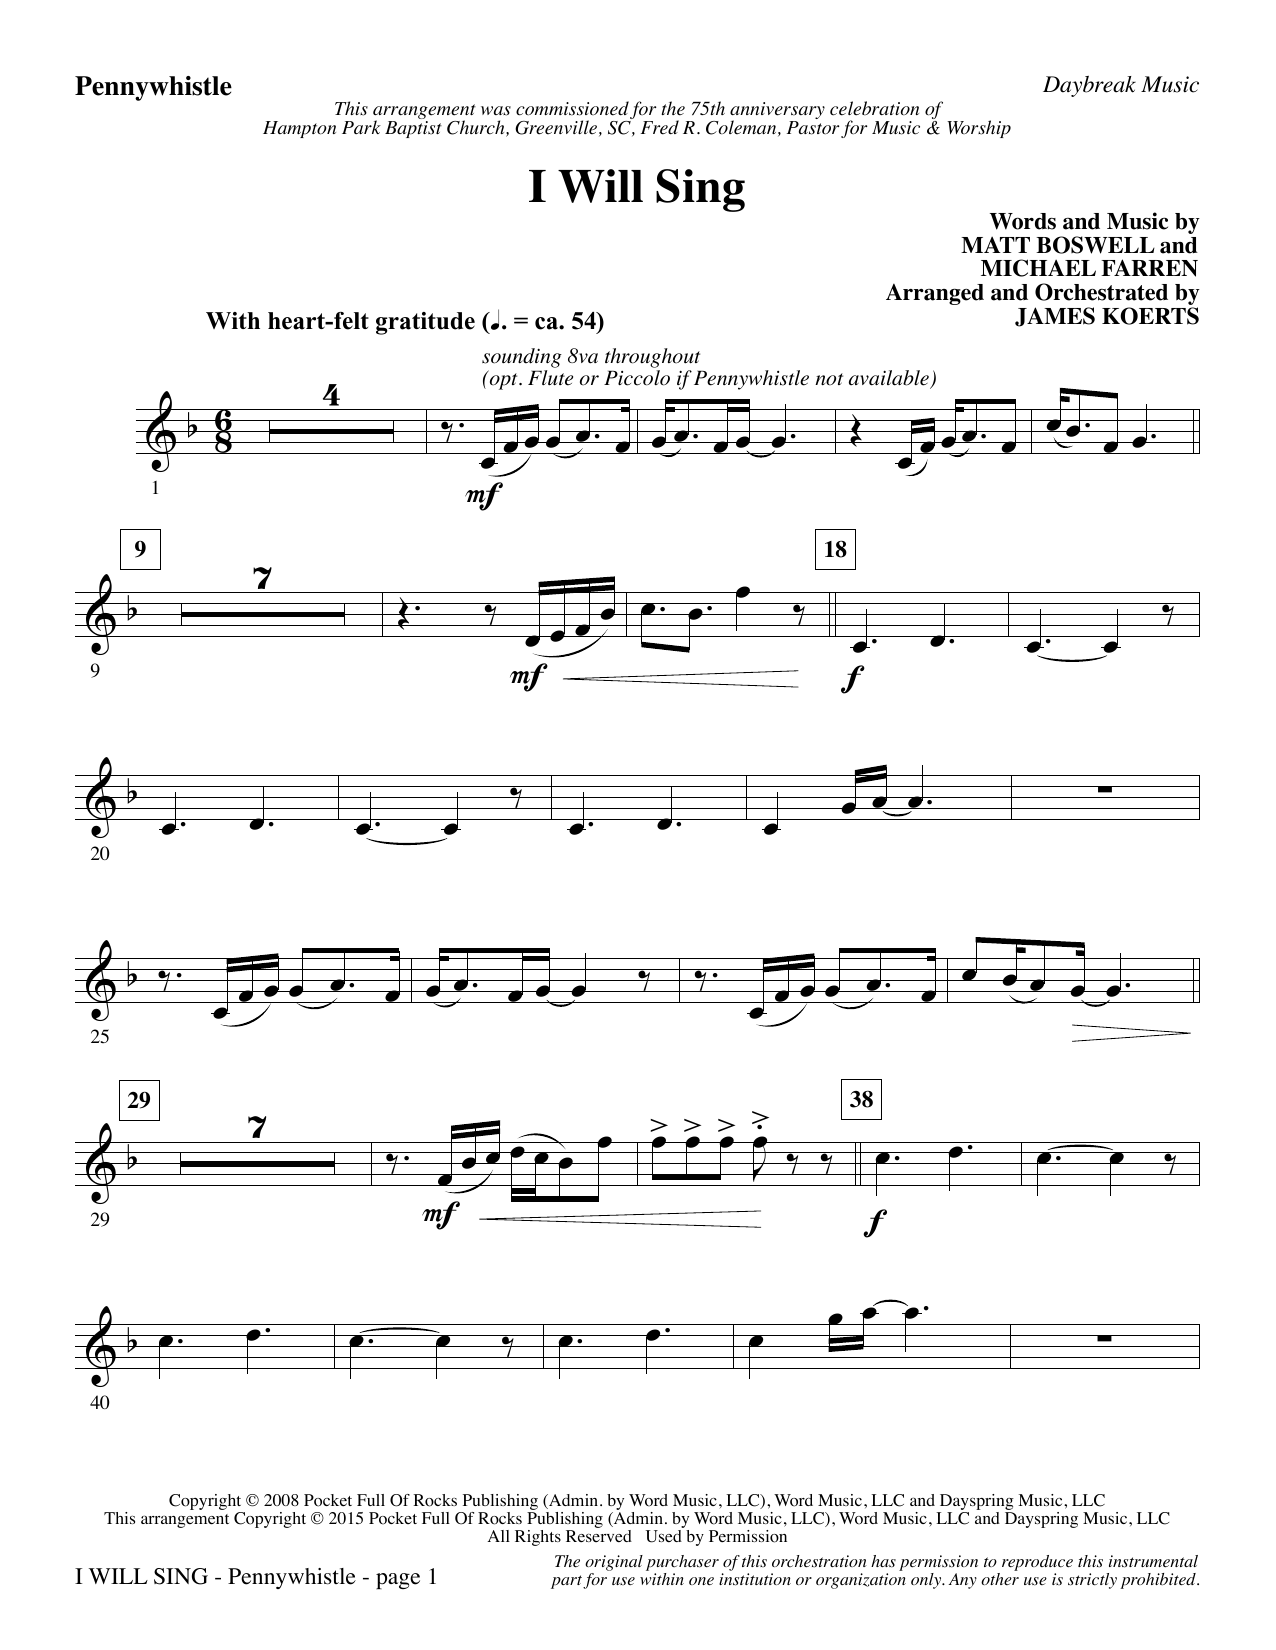 I Will Sing - Pennywhistle/Flute sheet music